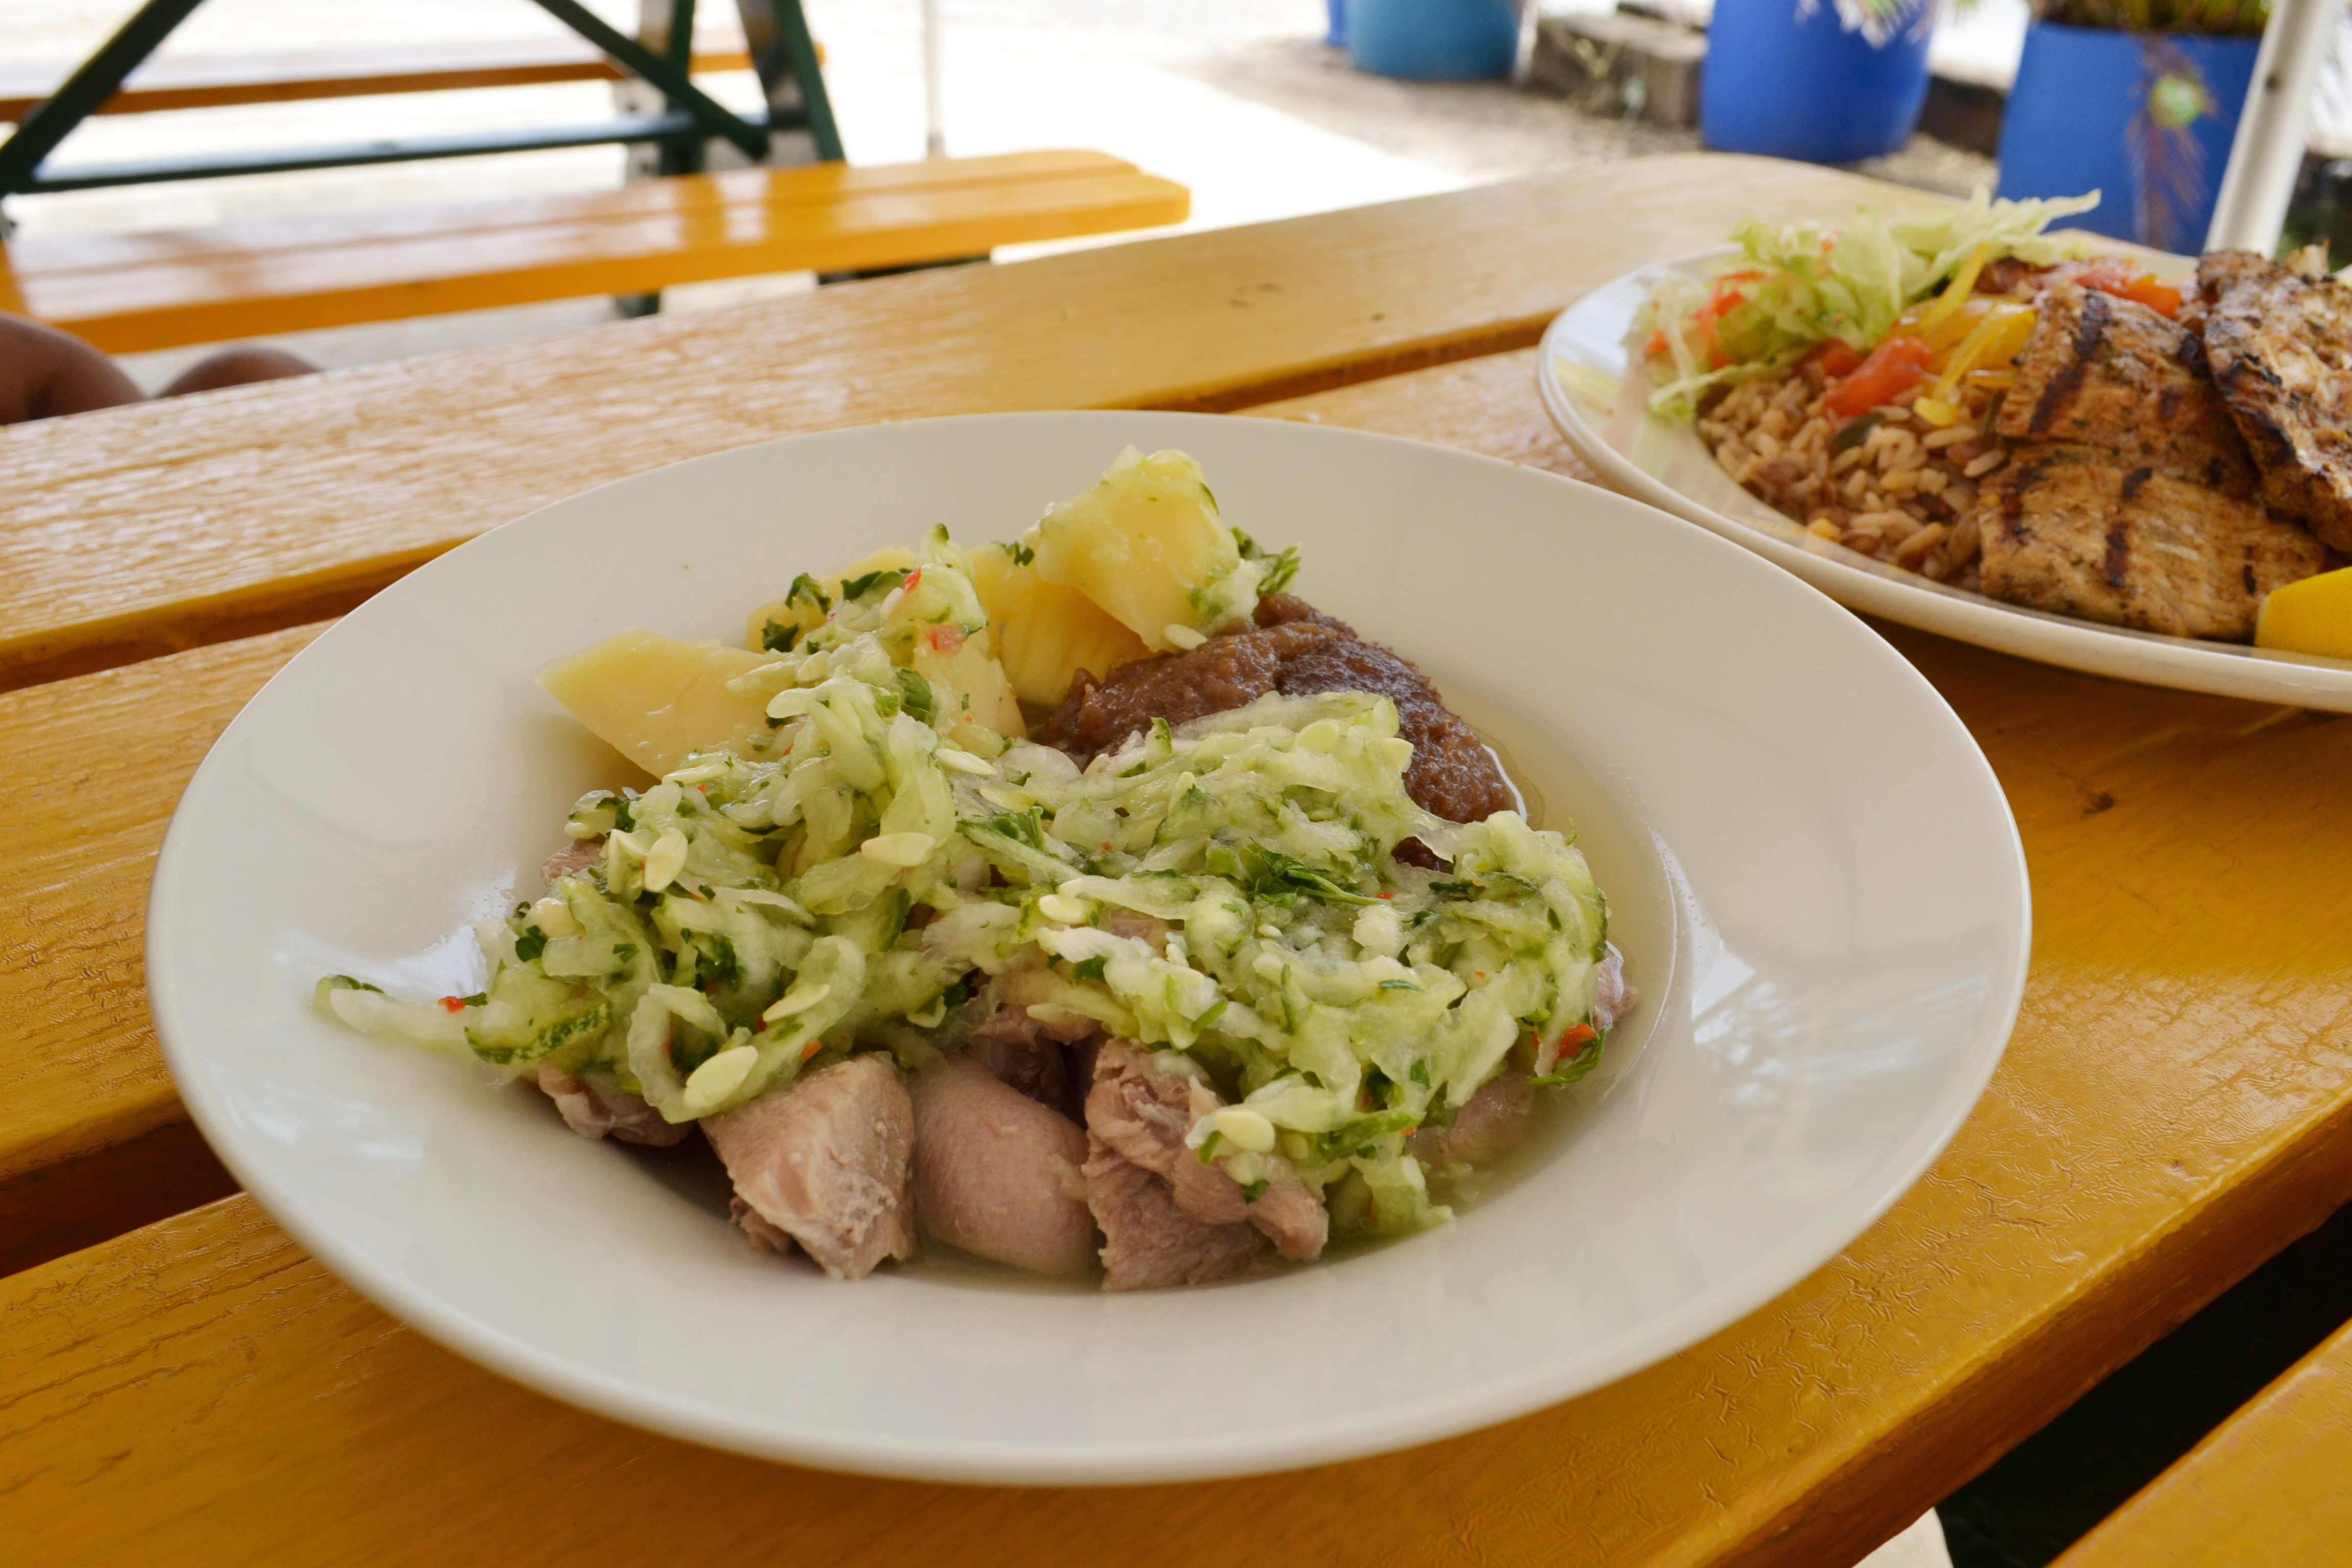 Pudding and Souse